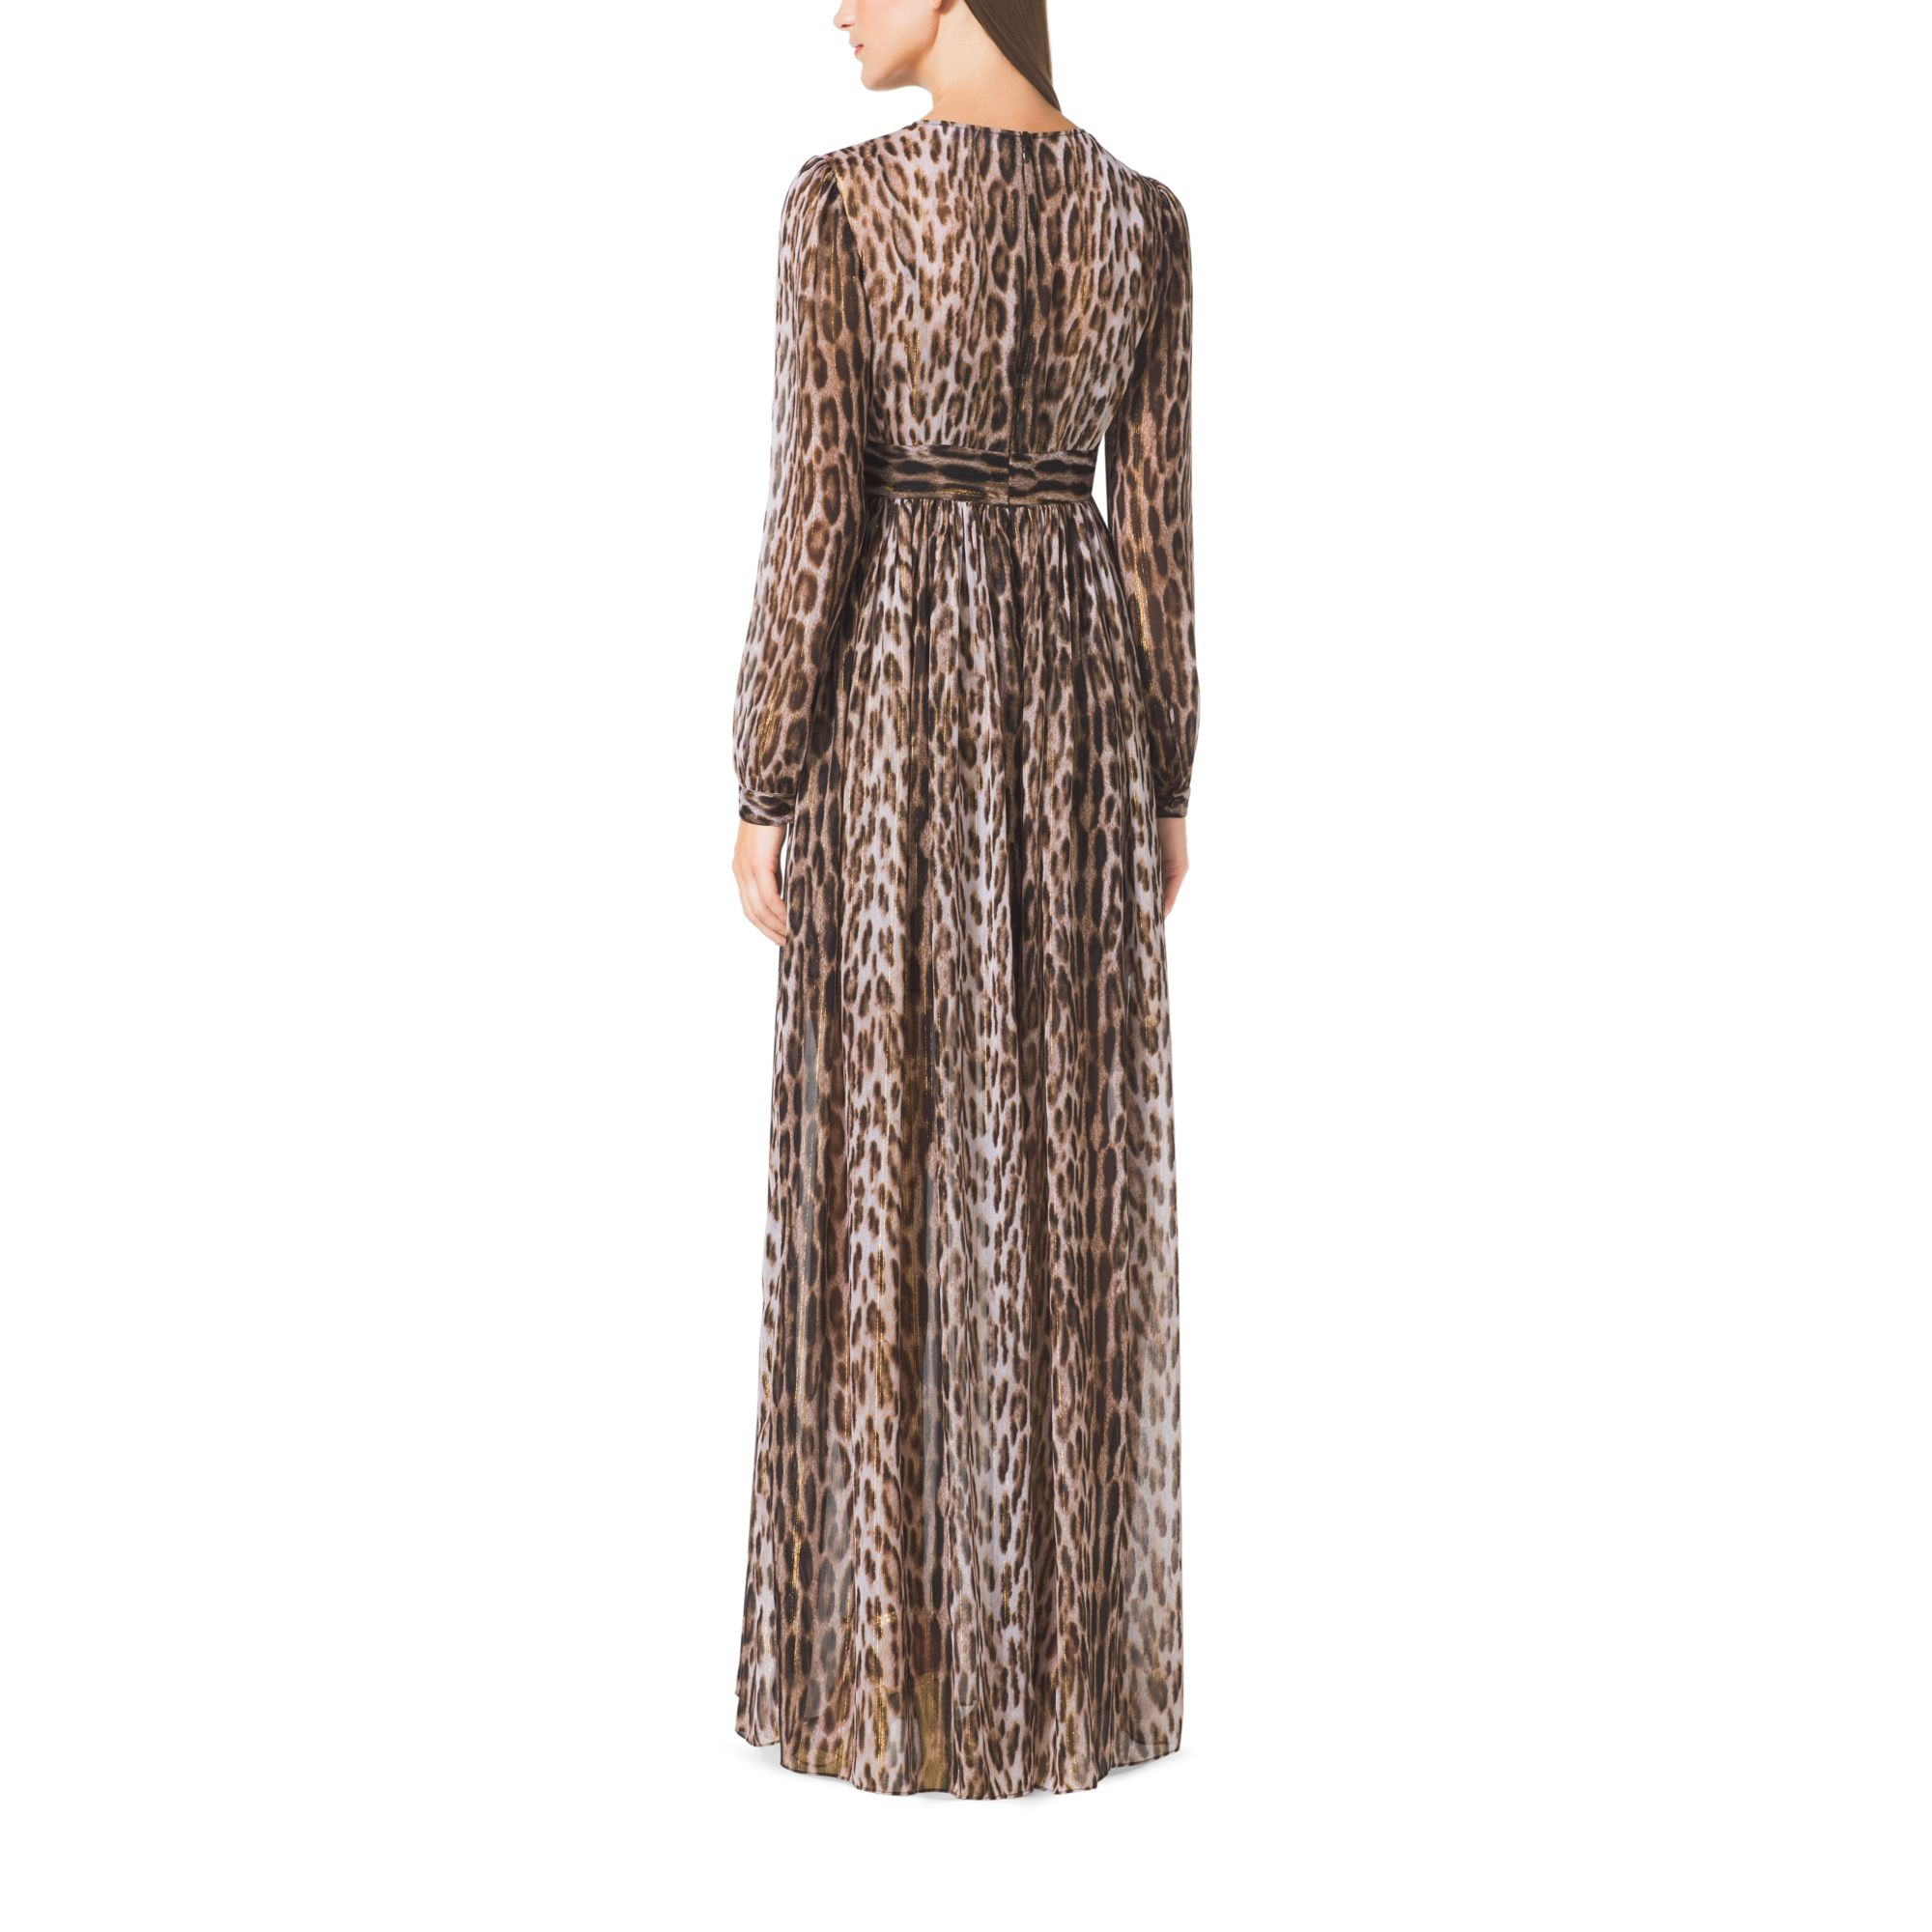 Michael kors Leopard-print Maxi Dress in Brown | Lyst